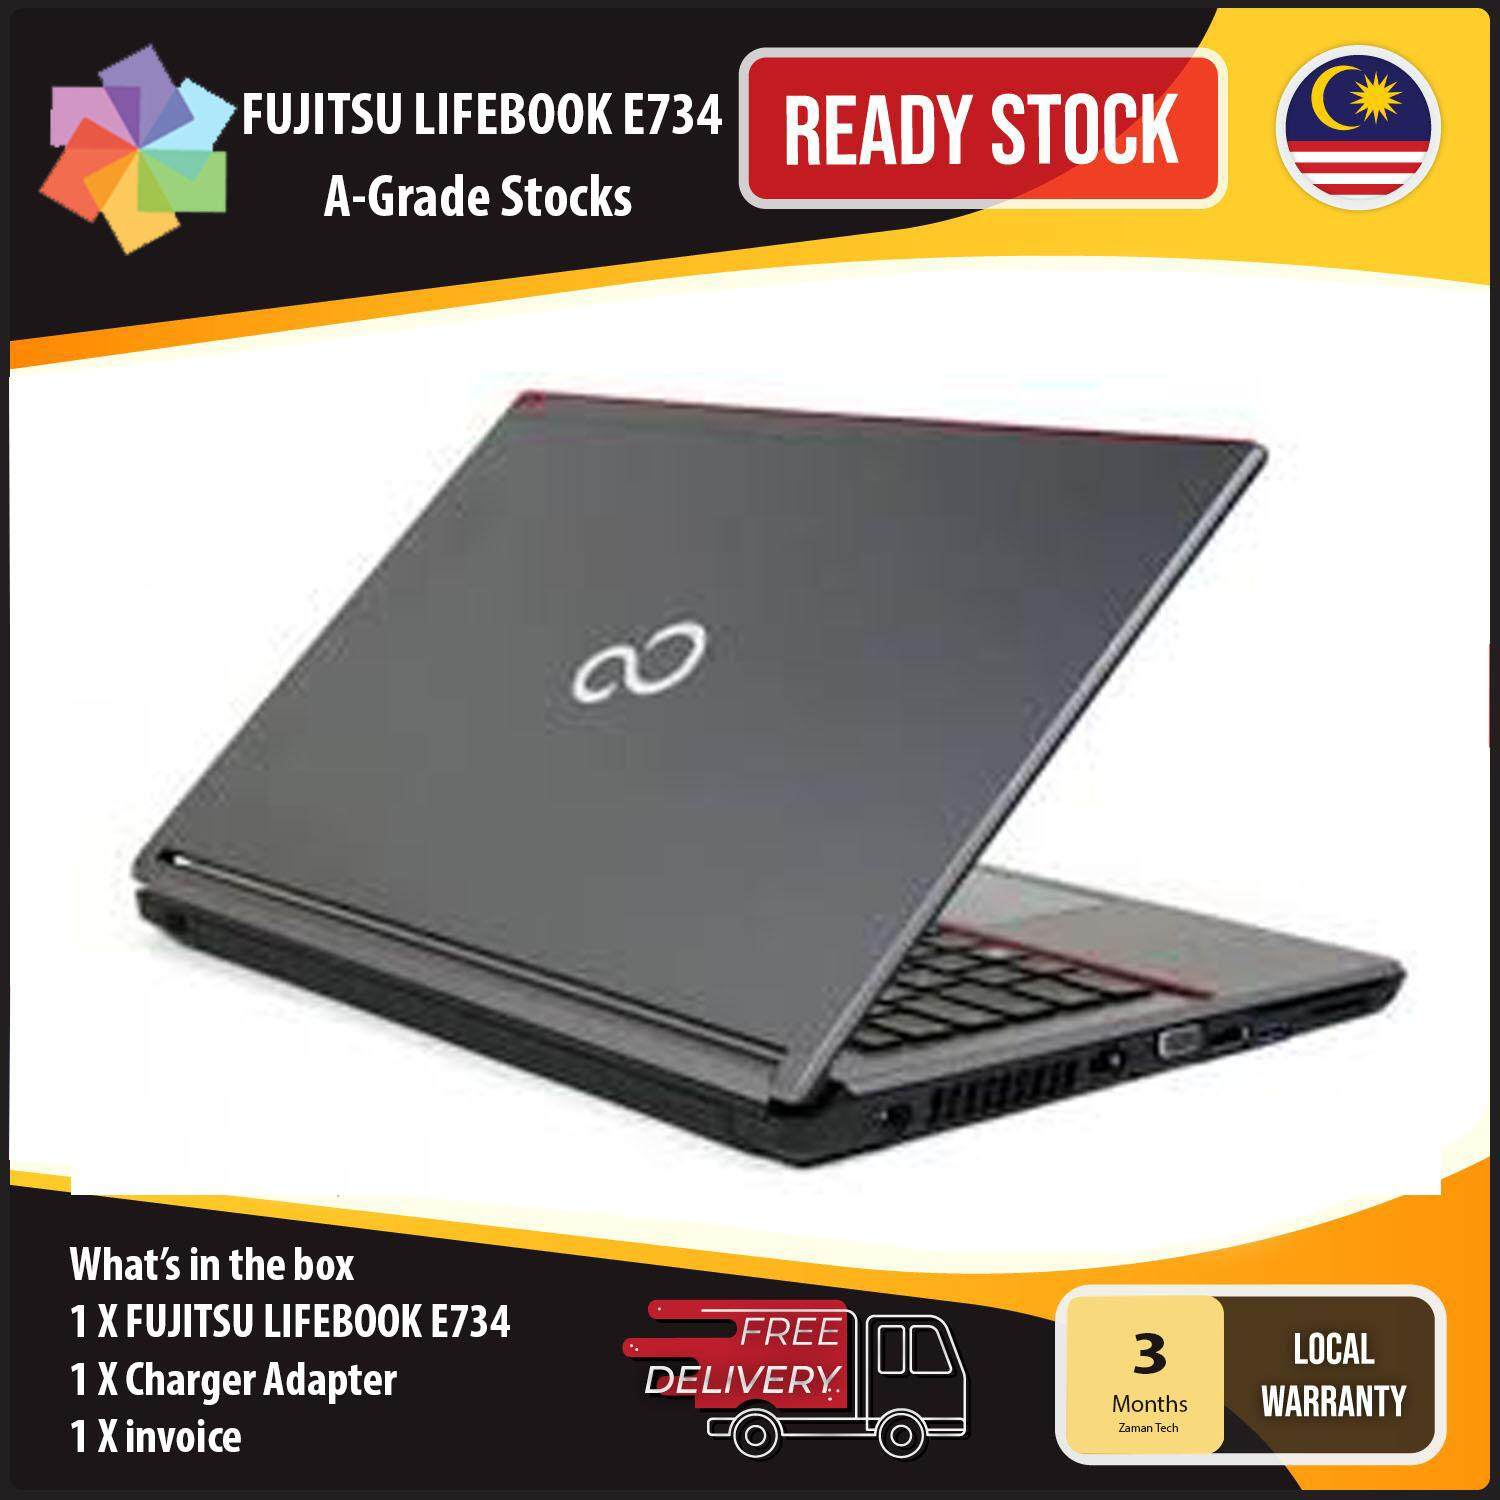 Fujitsu LIFEBOOK E734 -13.3 LED SCREEN - INTEL Core i5-4300M @2.60GHz, 4GB RAM, 500GB HDD, WIN 10 PRO - Refurbished Malaysia